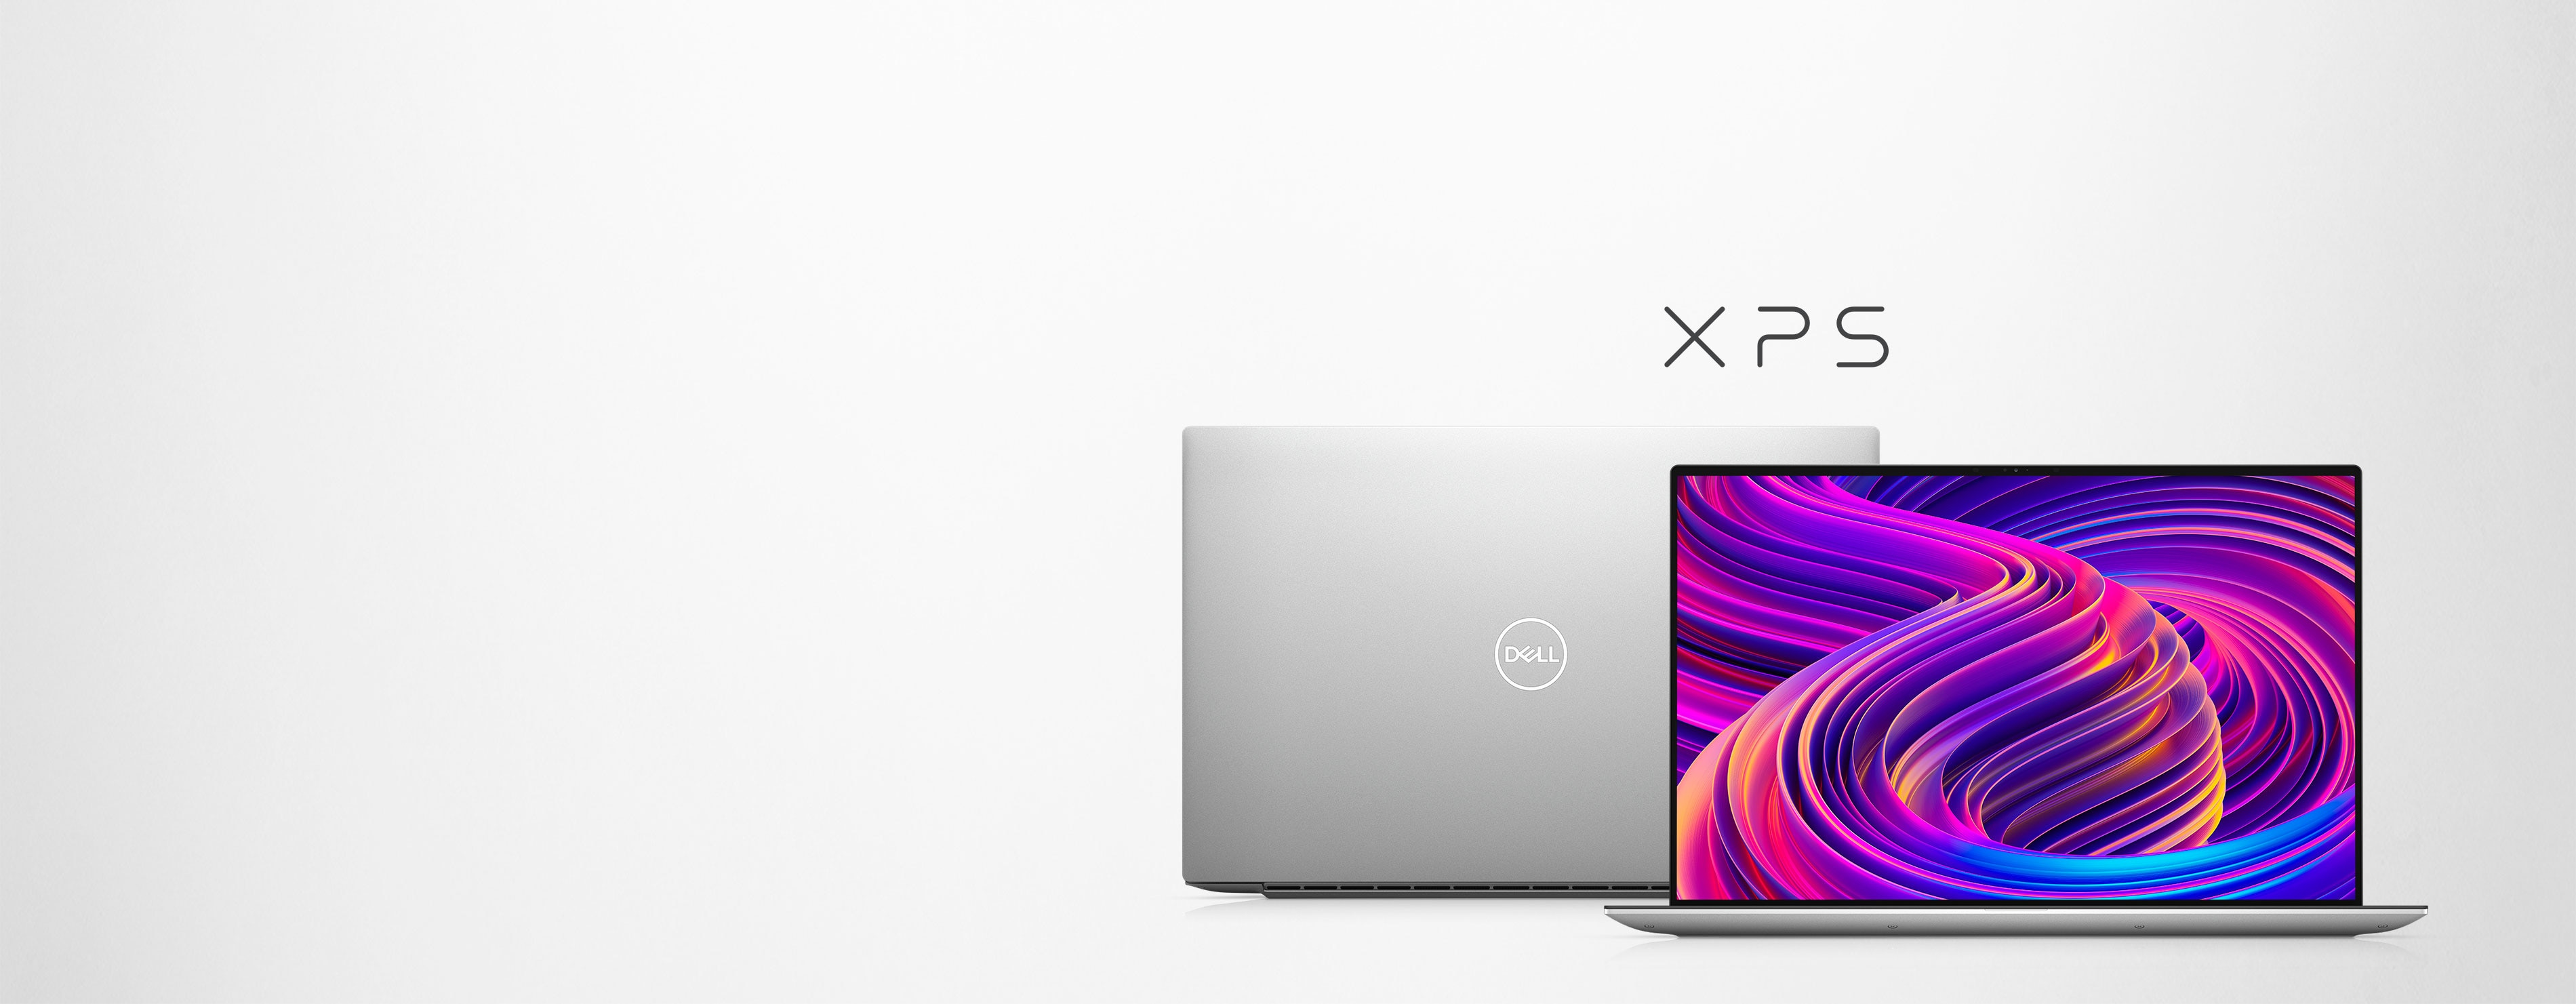 XPS Family